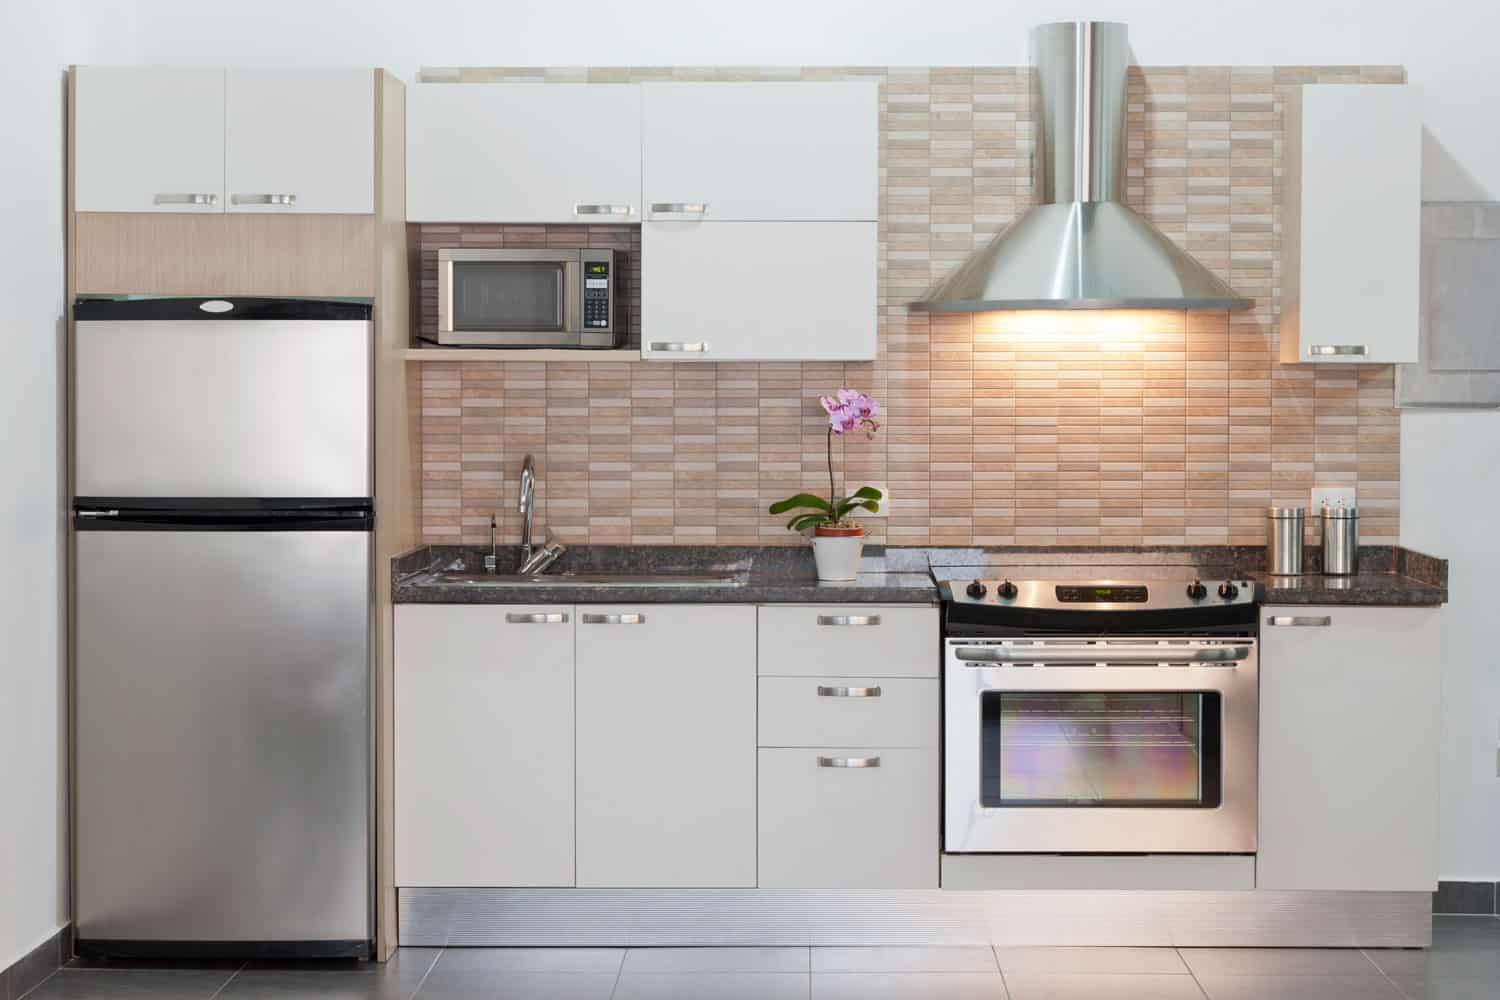 Small modern contemporary kitchen with an oven, stainless steel hood, and white color paneled kitchen cabinets